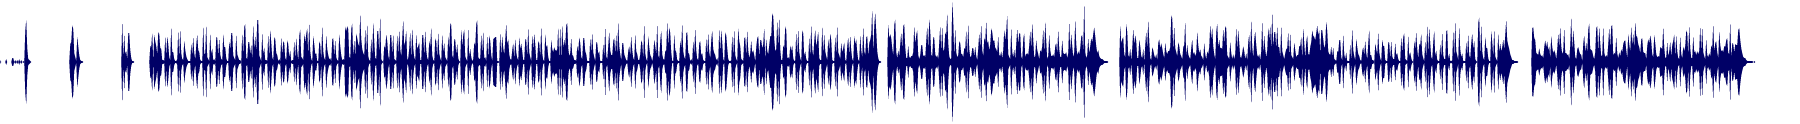 waveform of track #68523